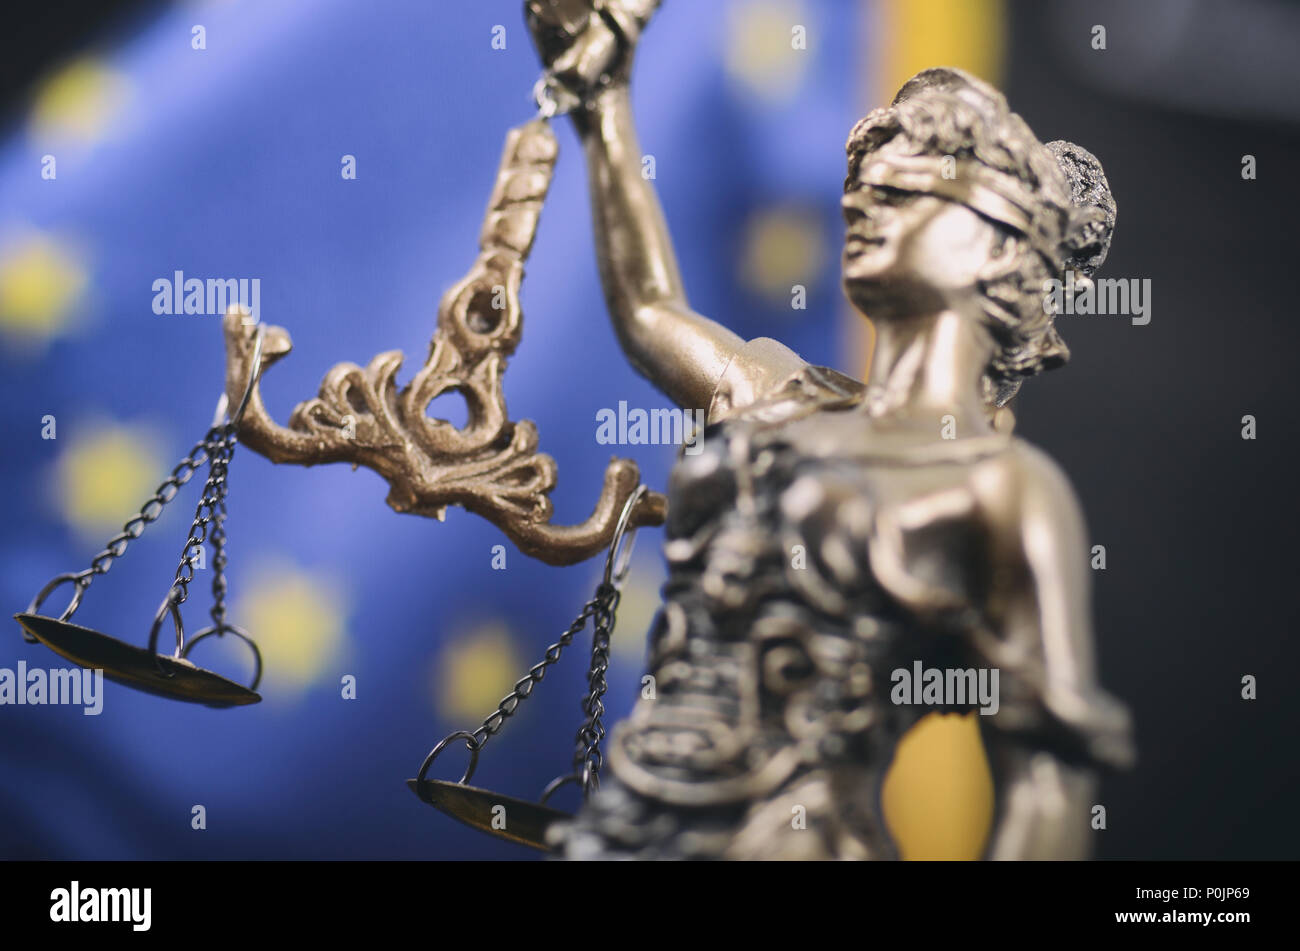 Law and Justice, Legality concept, Scales of Justice, Justitia, Lady Justice in front of the European Union flag in the background. - Stock Image